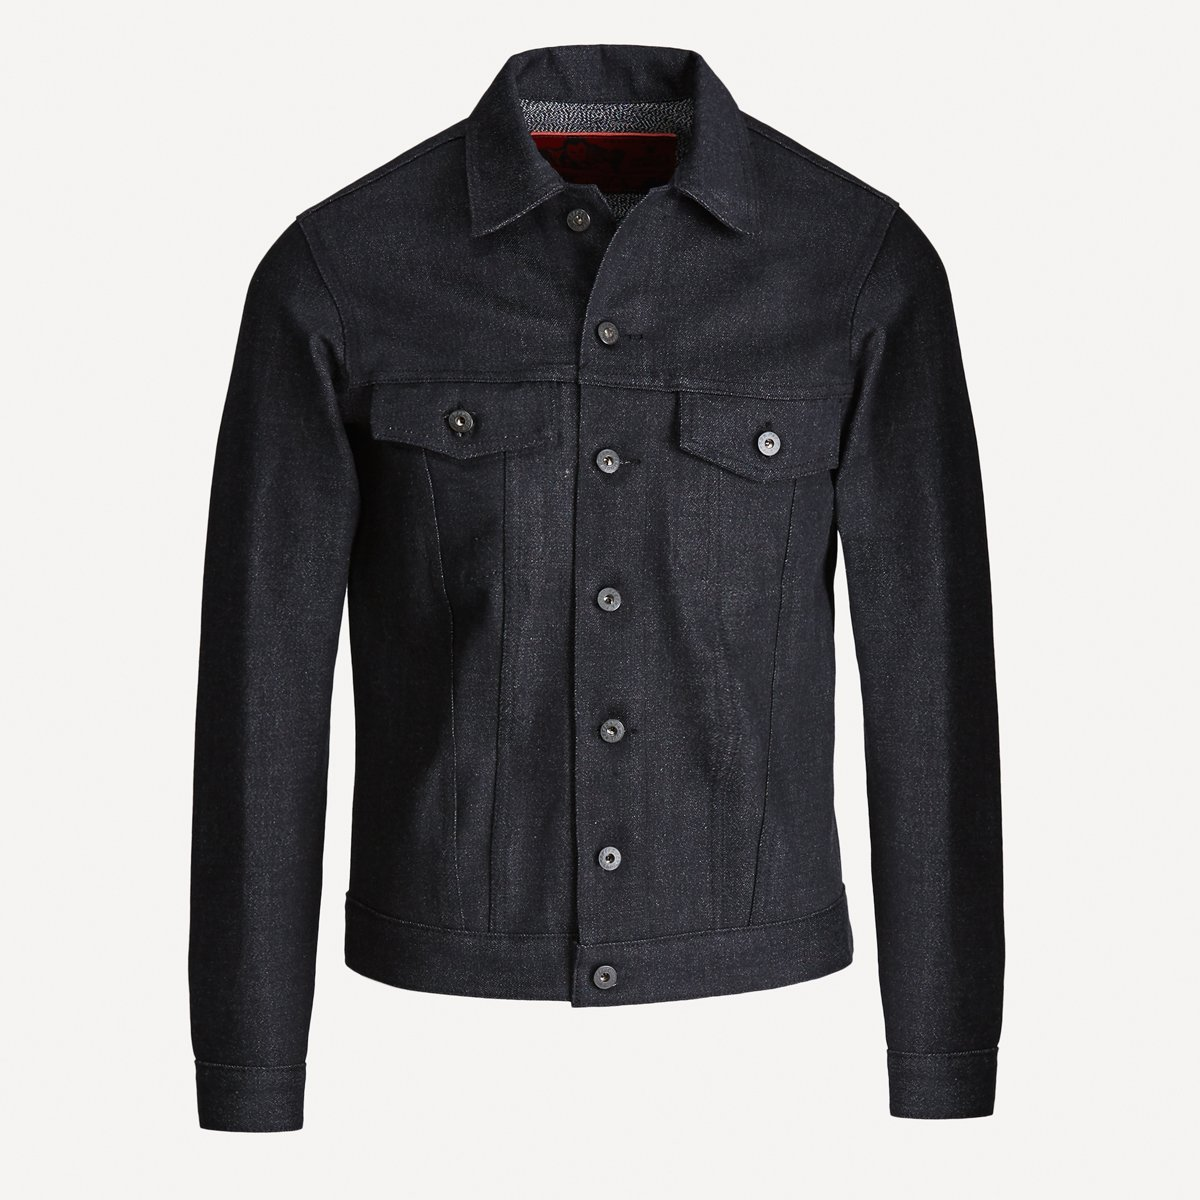 Naked & Famous x Frank & Oak Selvedge Denim Jacket in Black